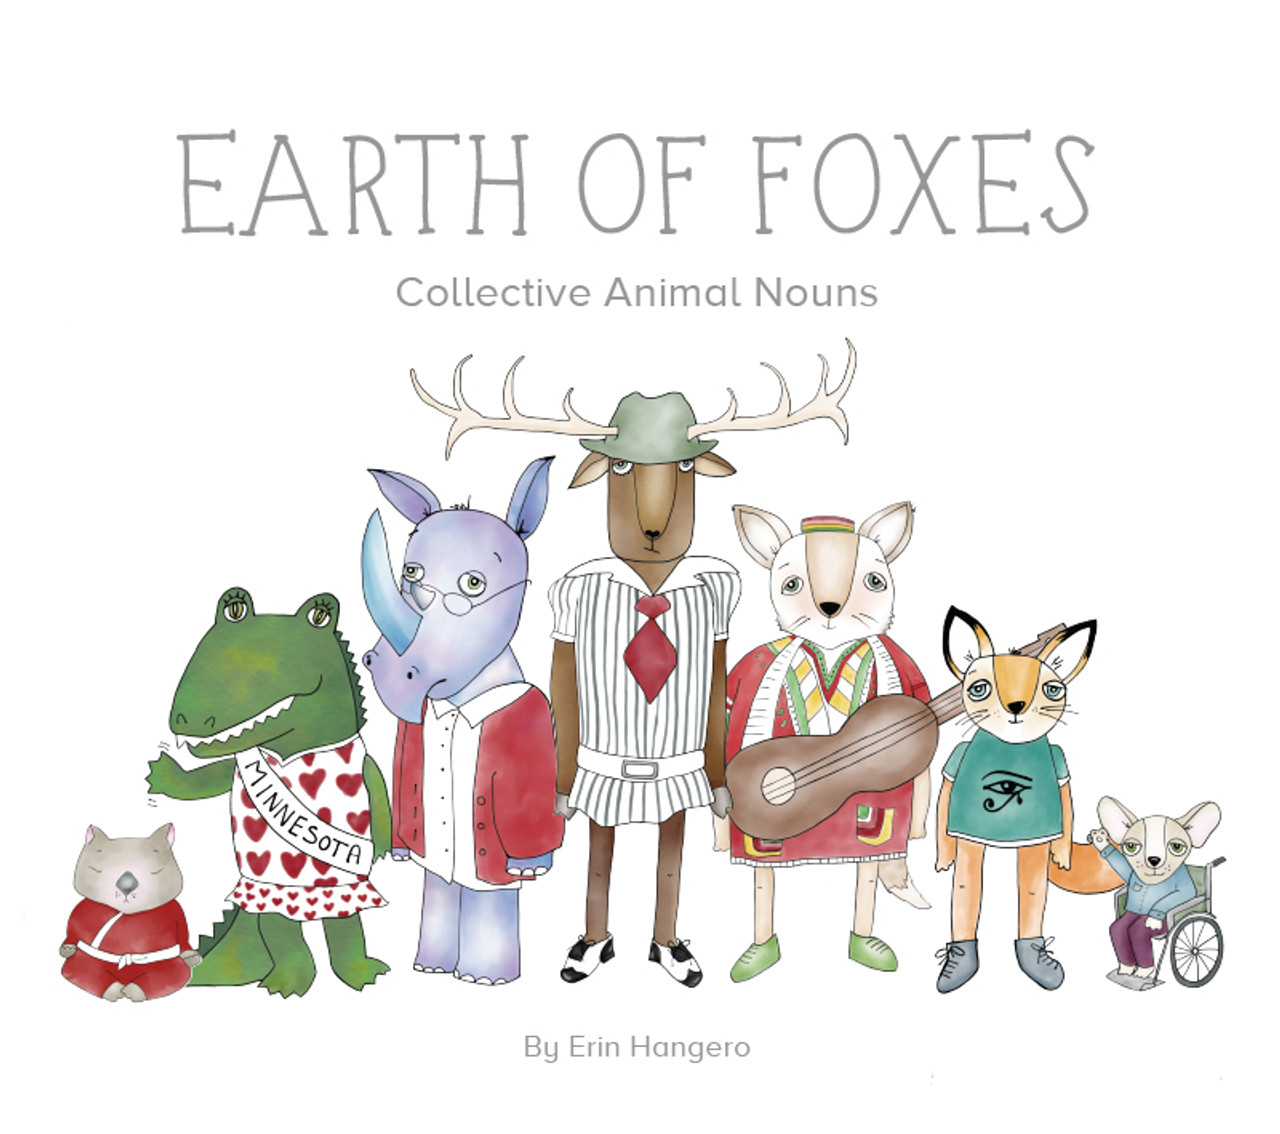 Earth of Foxes: Collective Animal Nouns